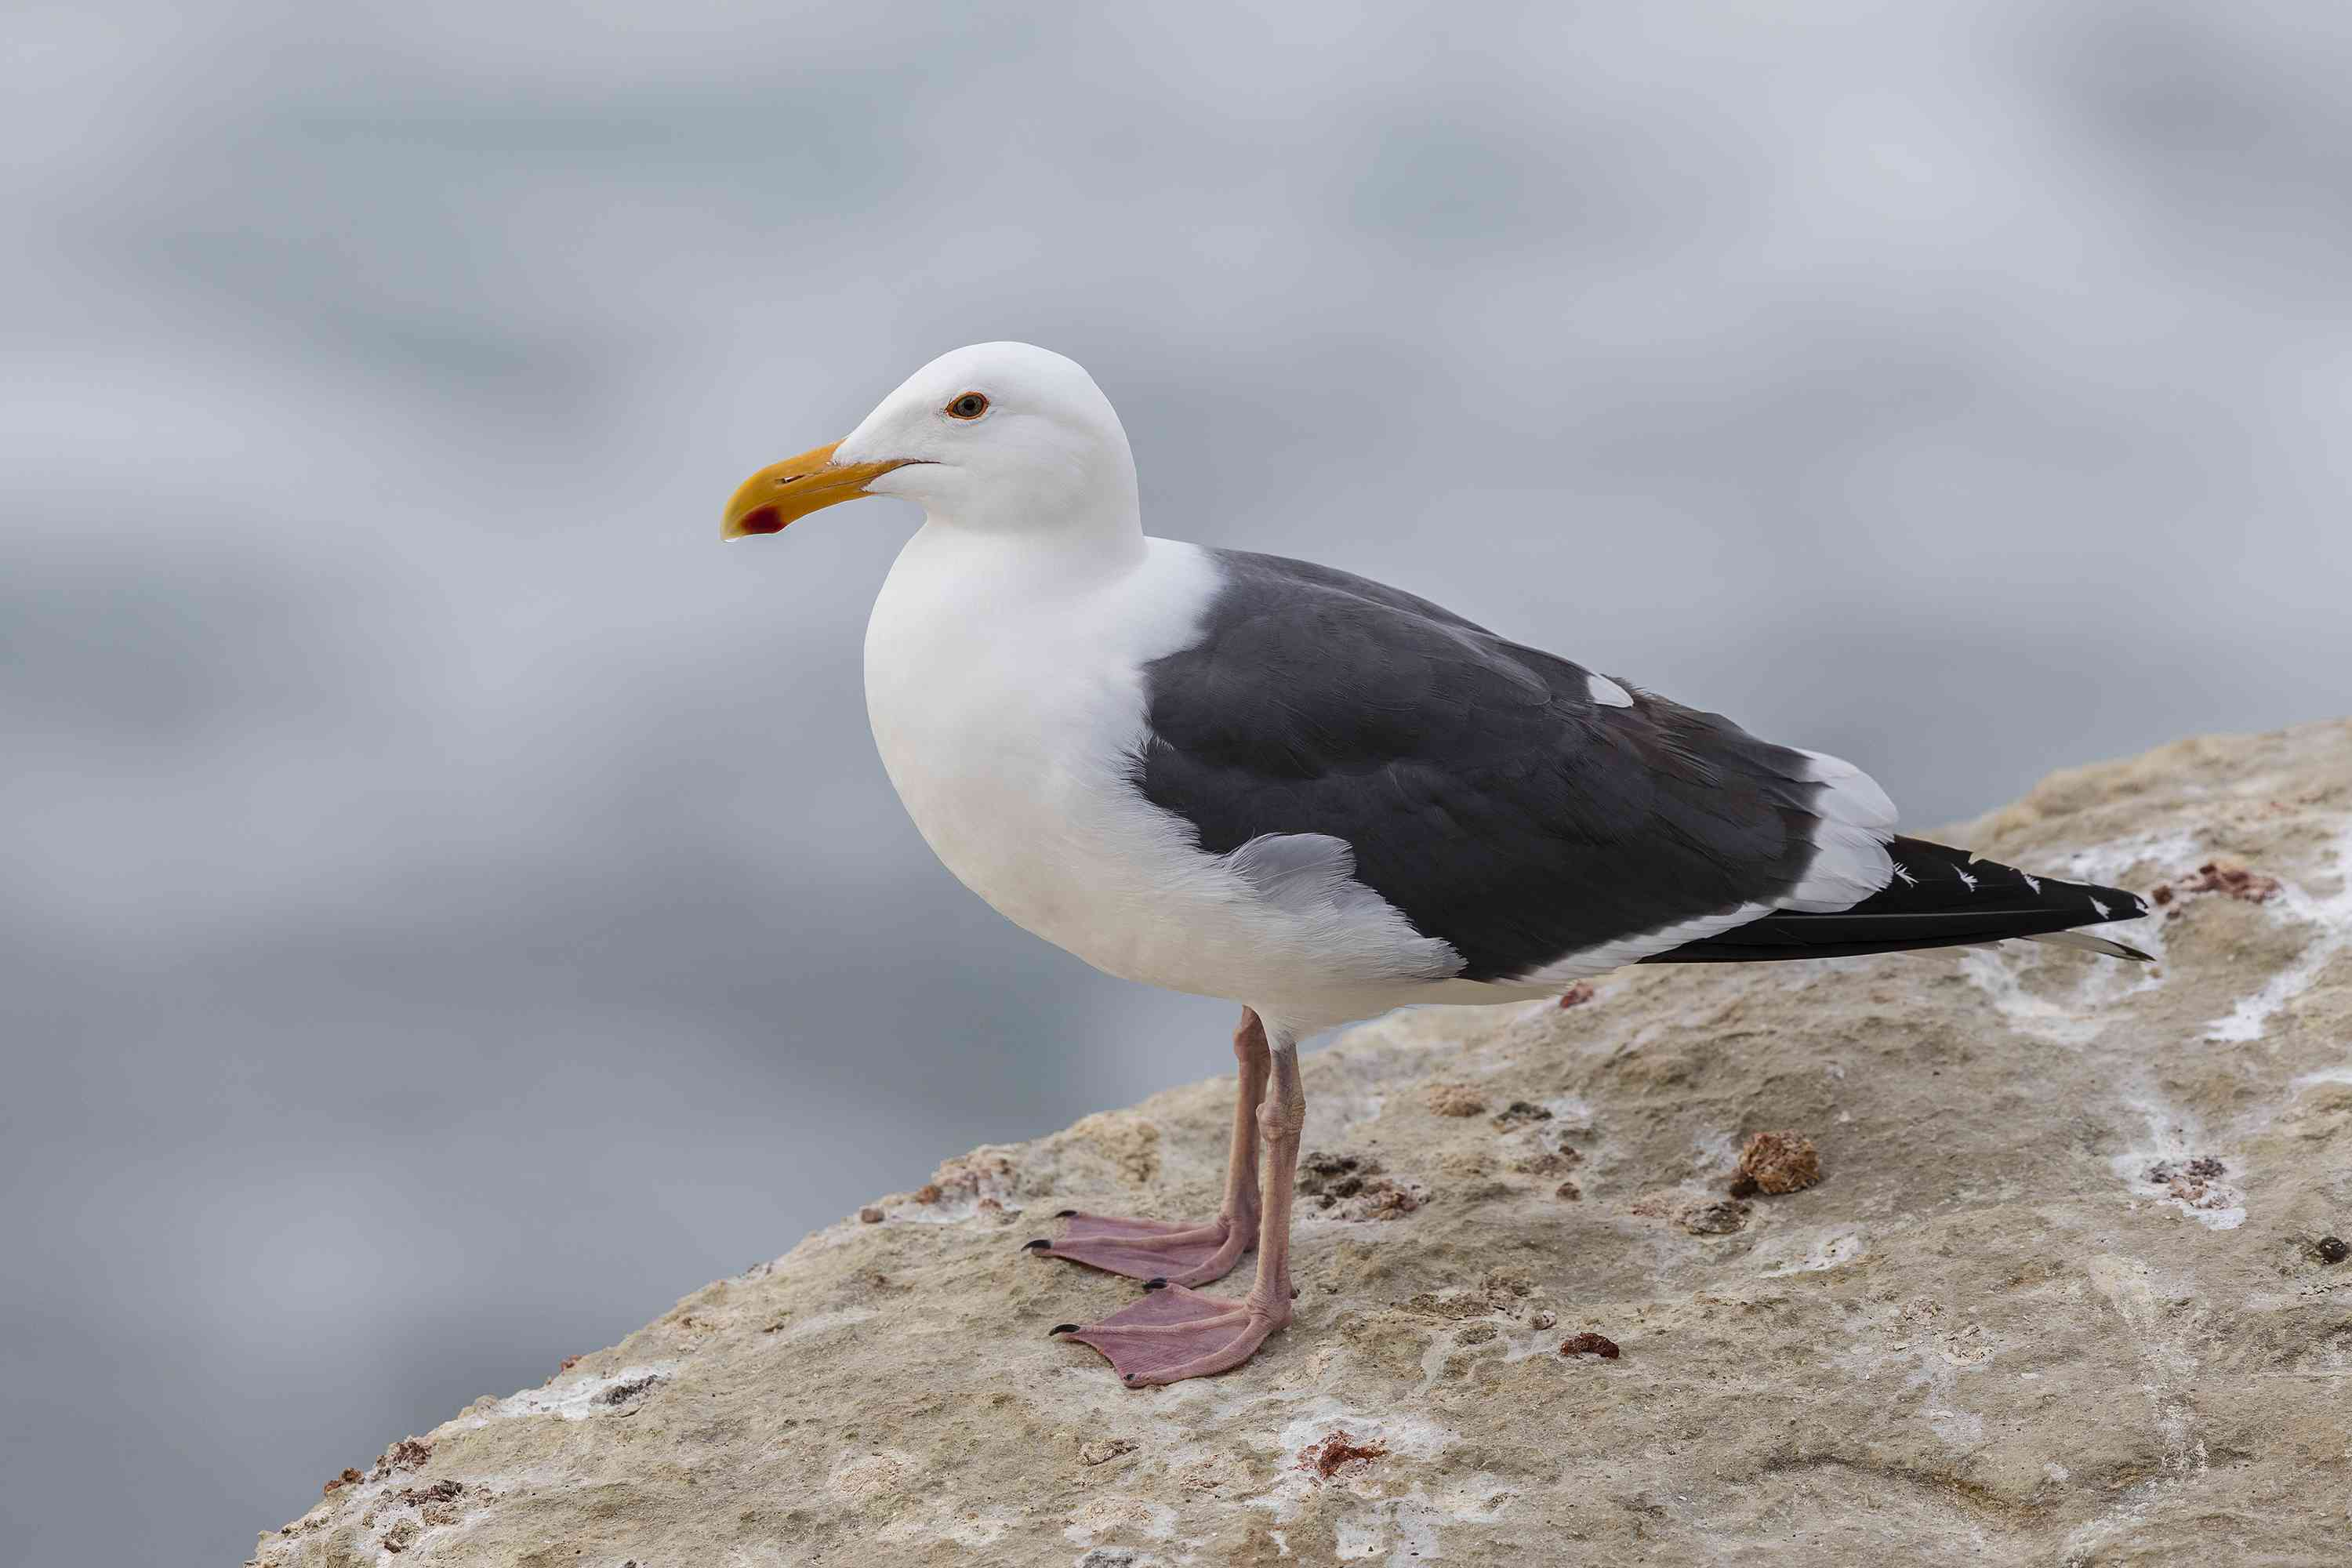 California Gull perched on a cliff by the Pacific Ocean